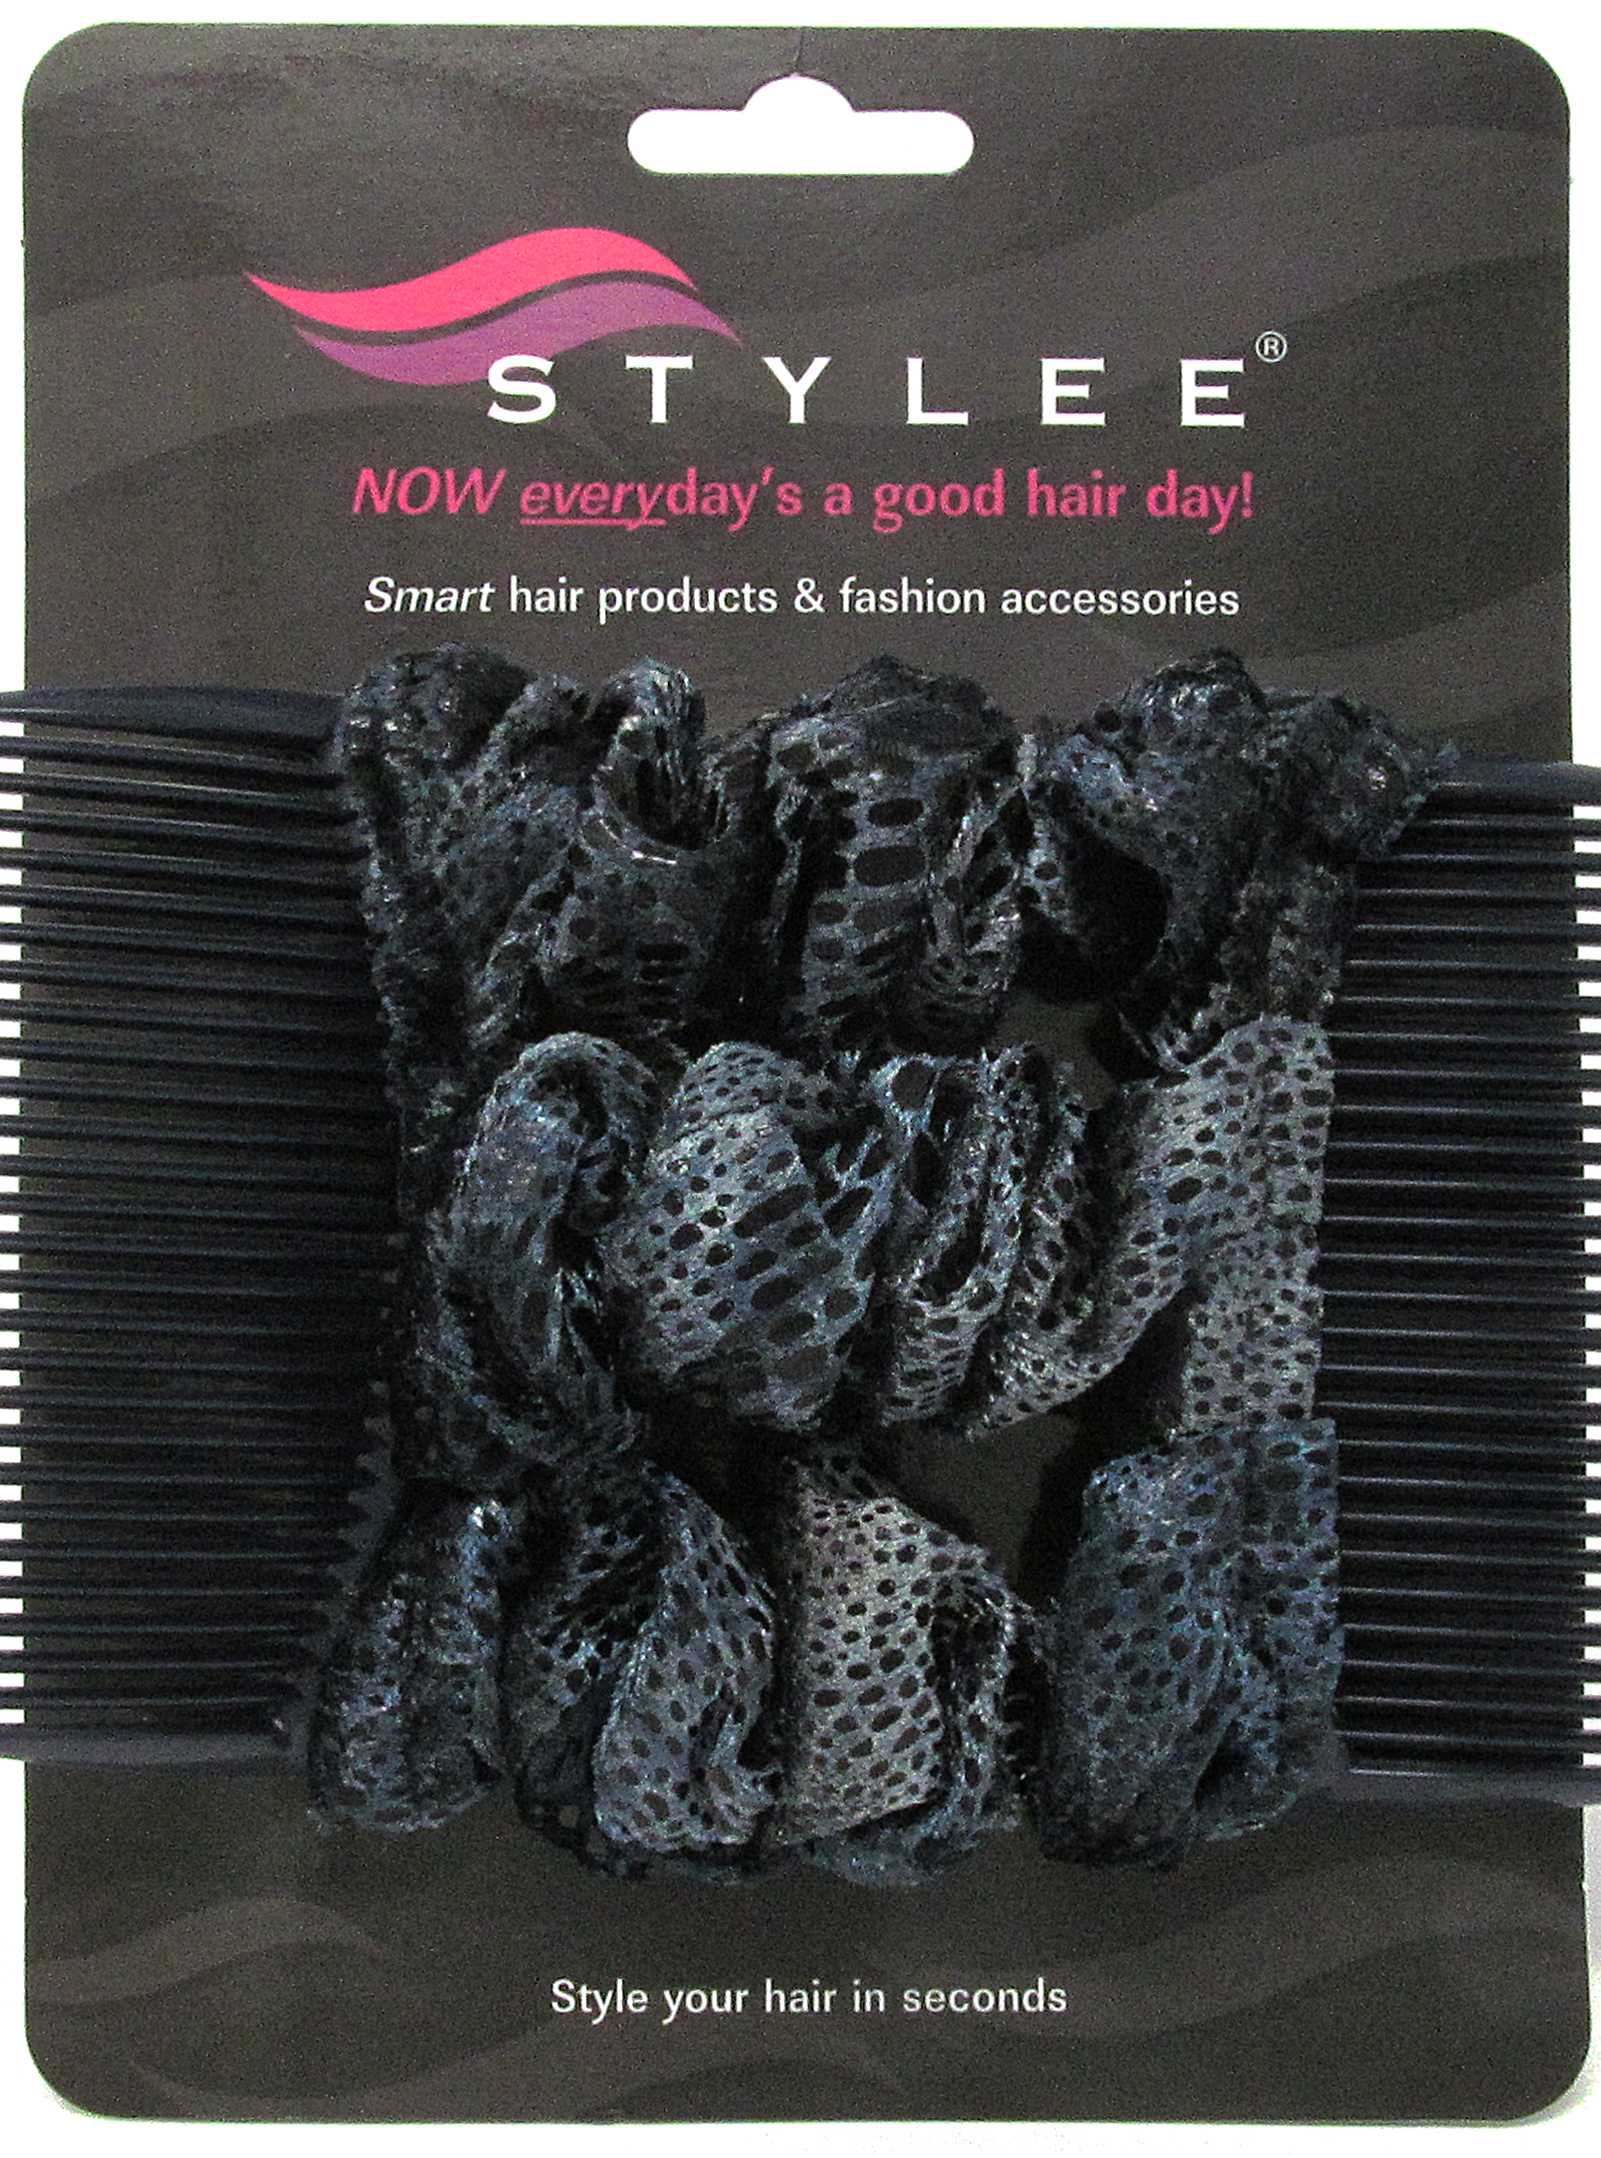 stylee hair accessories 3 blue grey snakeskin product code 1041 7652 | bluegreysnake3s